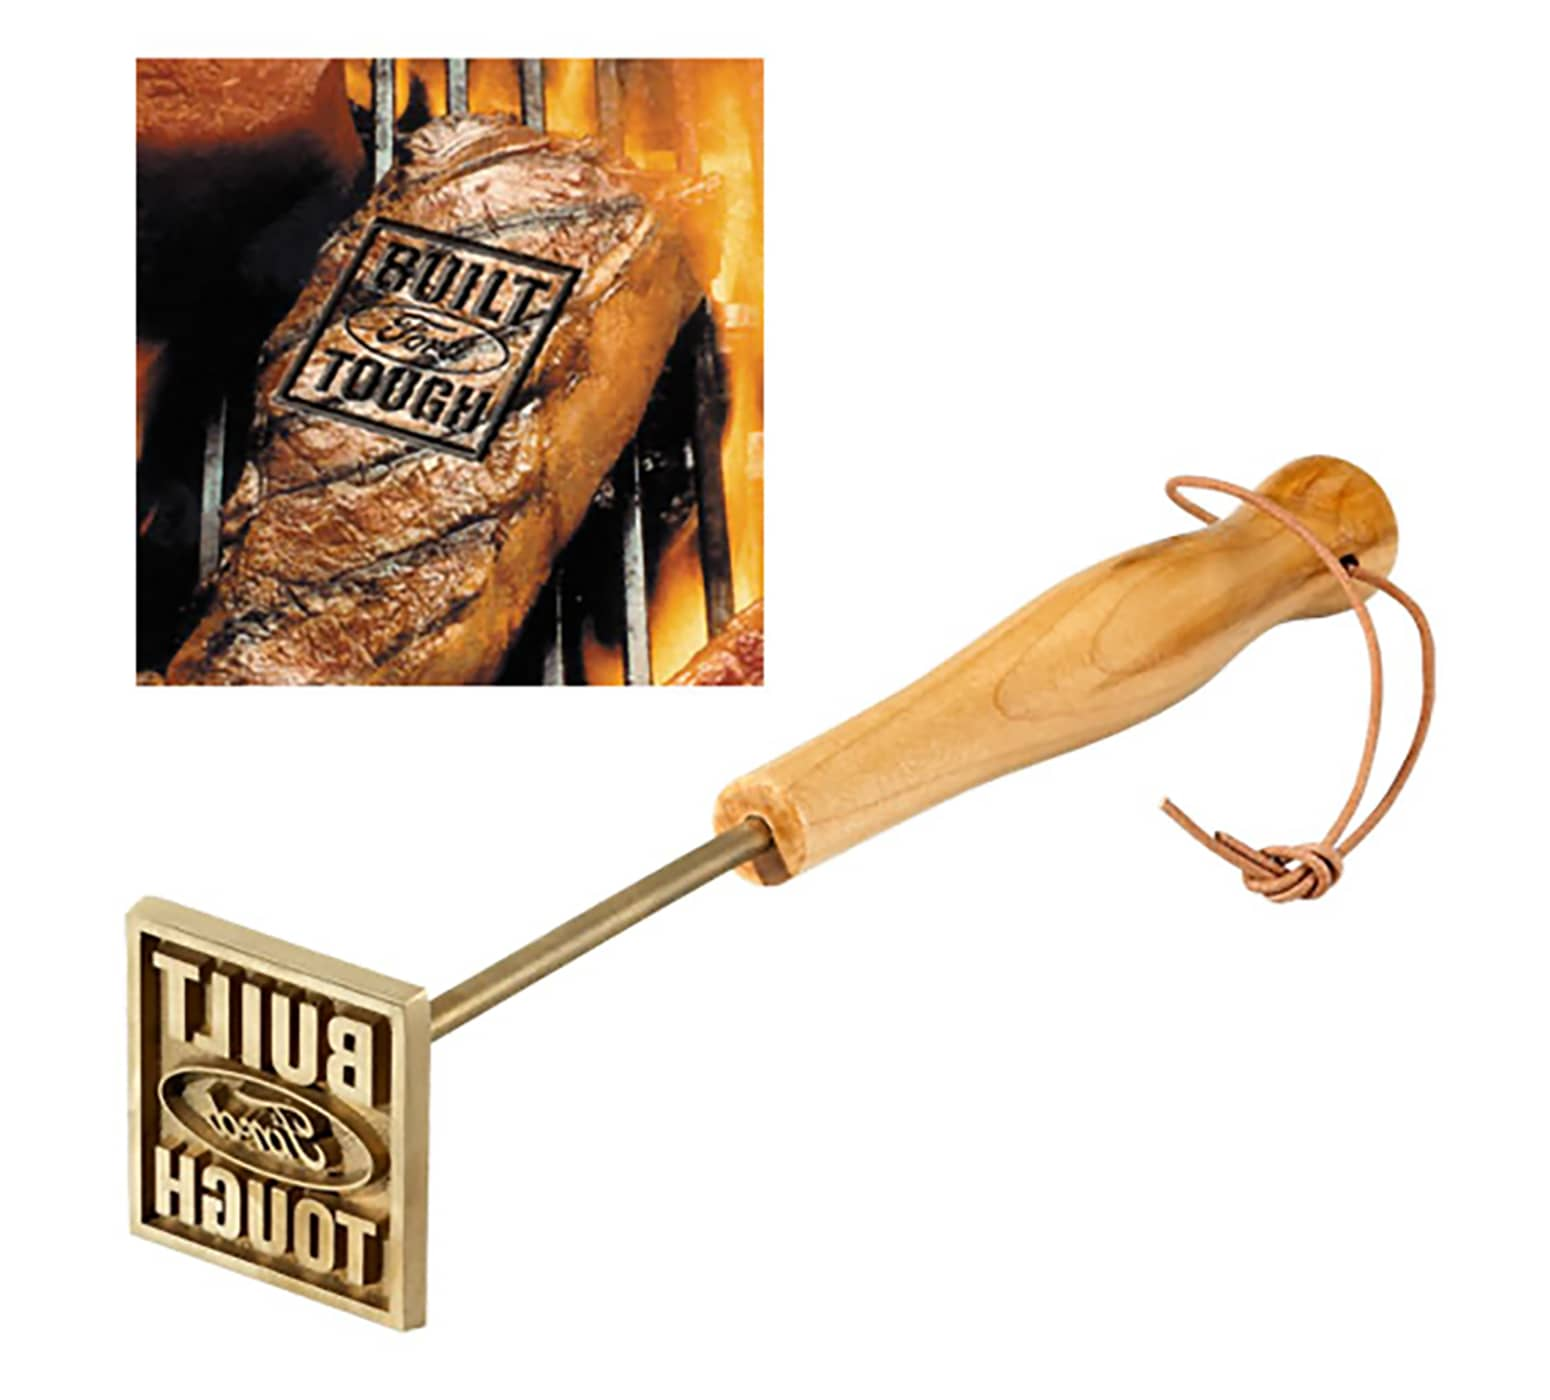 Built Ford Tough Branding Iron